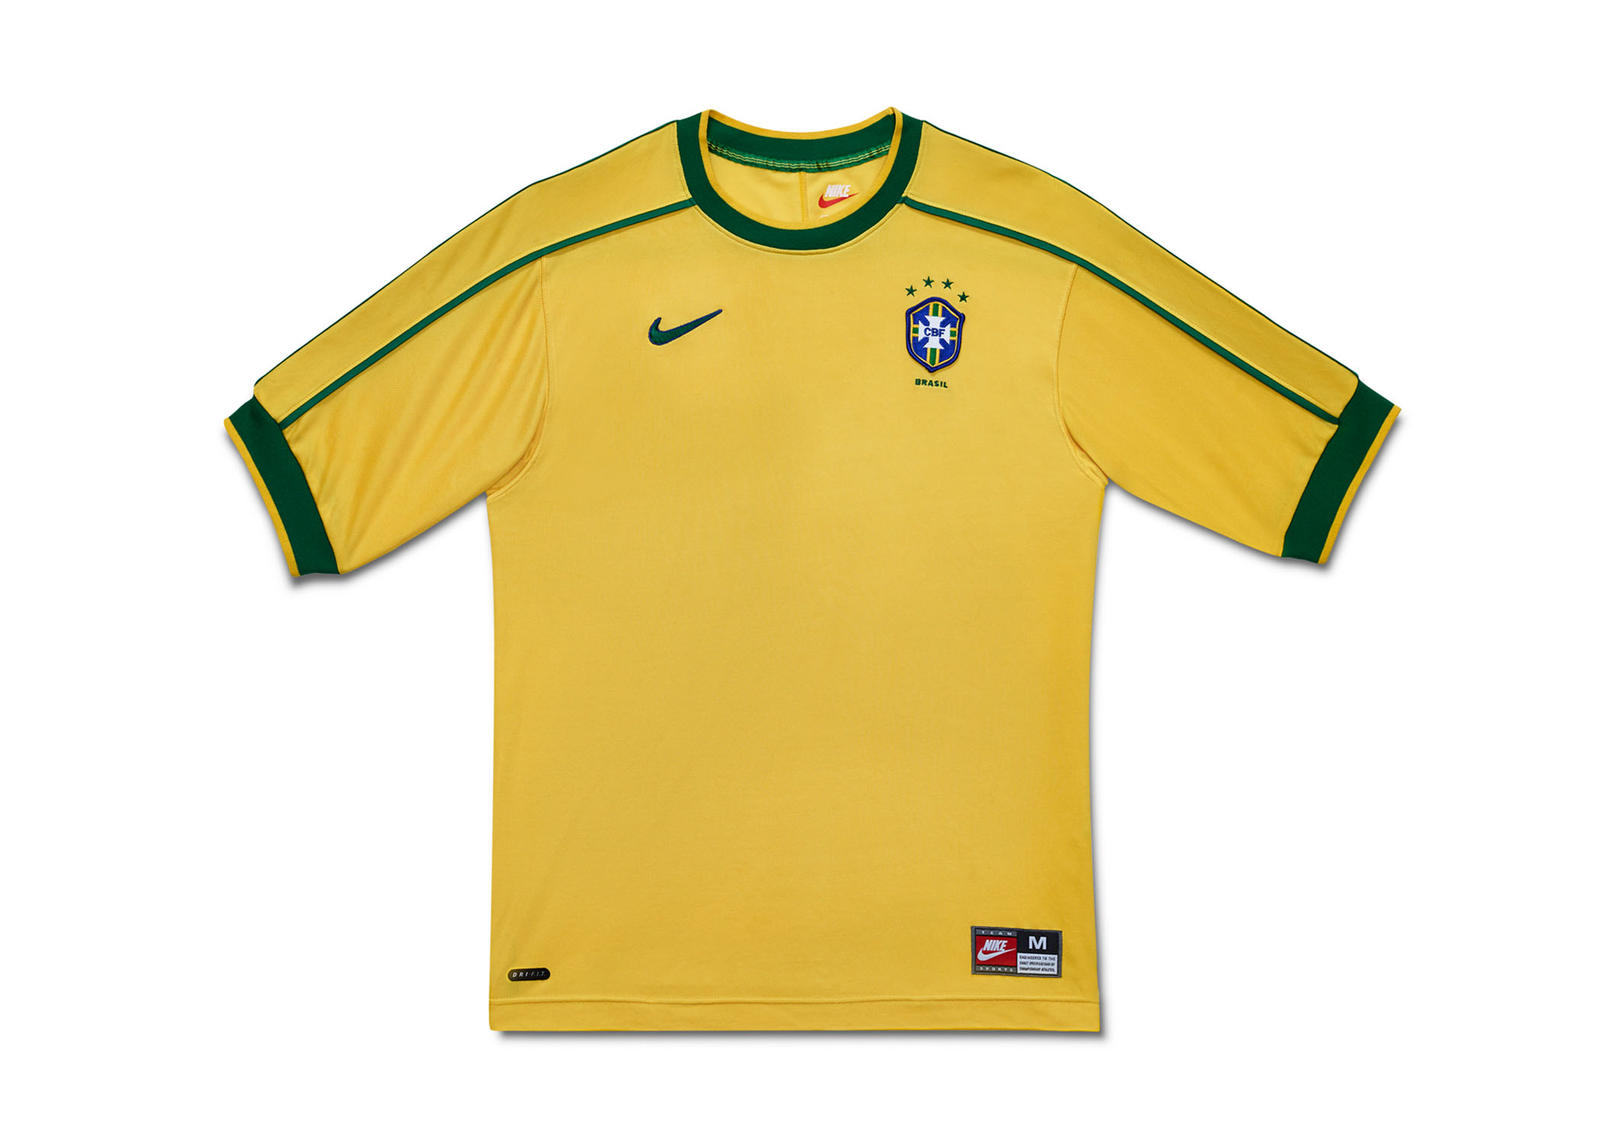 a0111dd8cb8 A Retrospective of Brasil s Yellow Jersey - Nike News